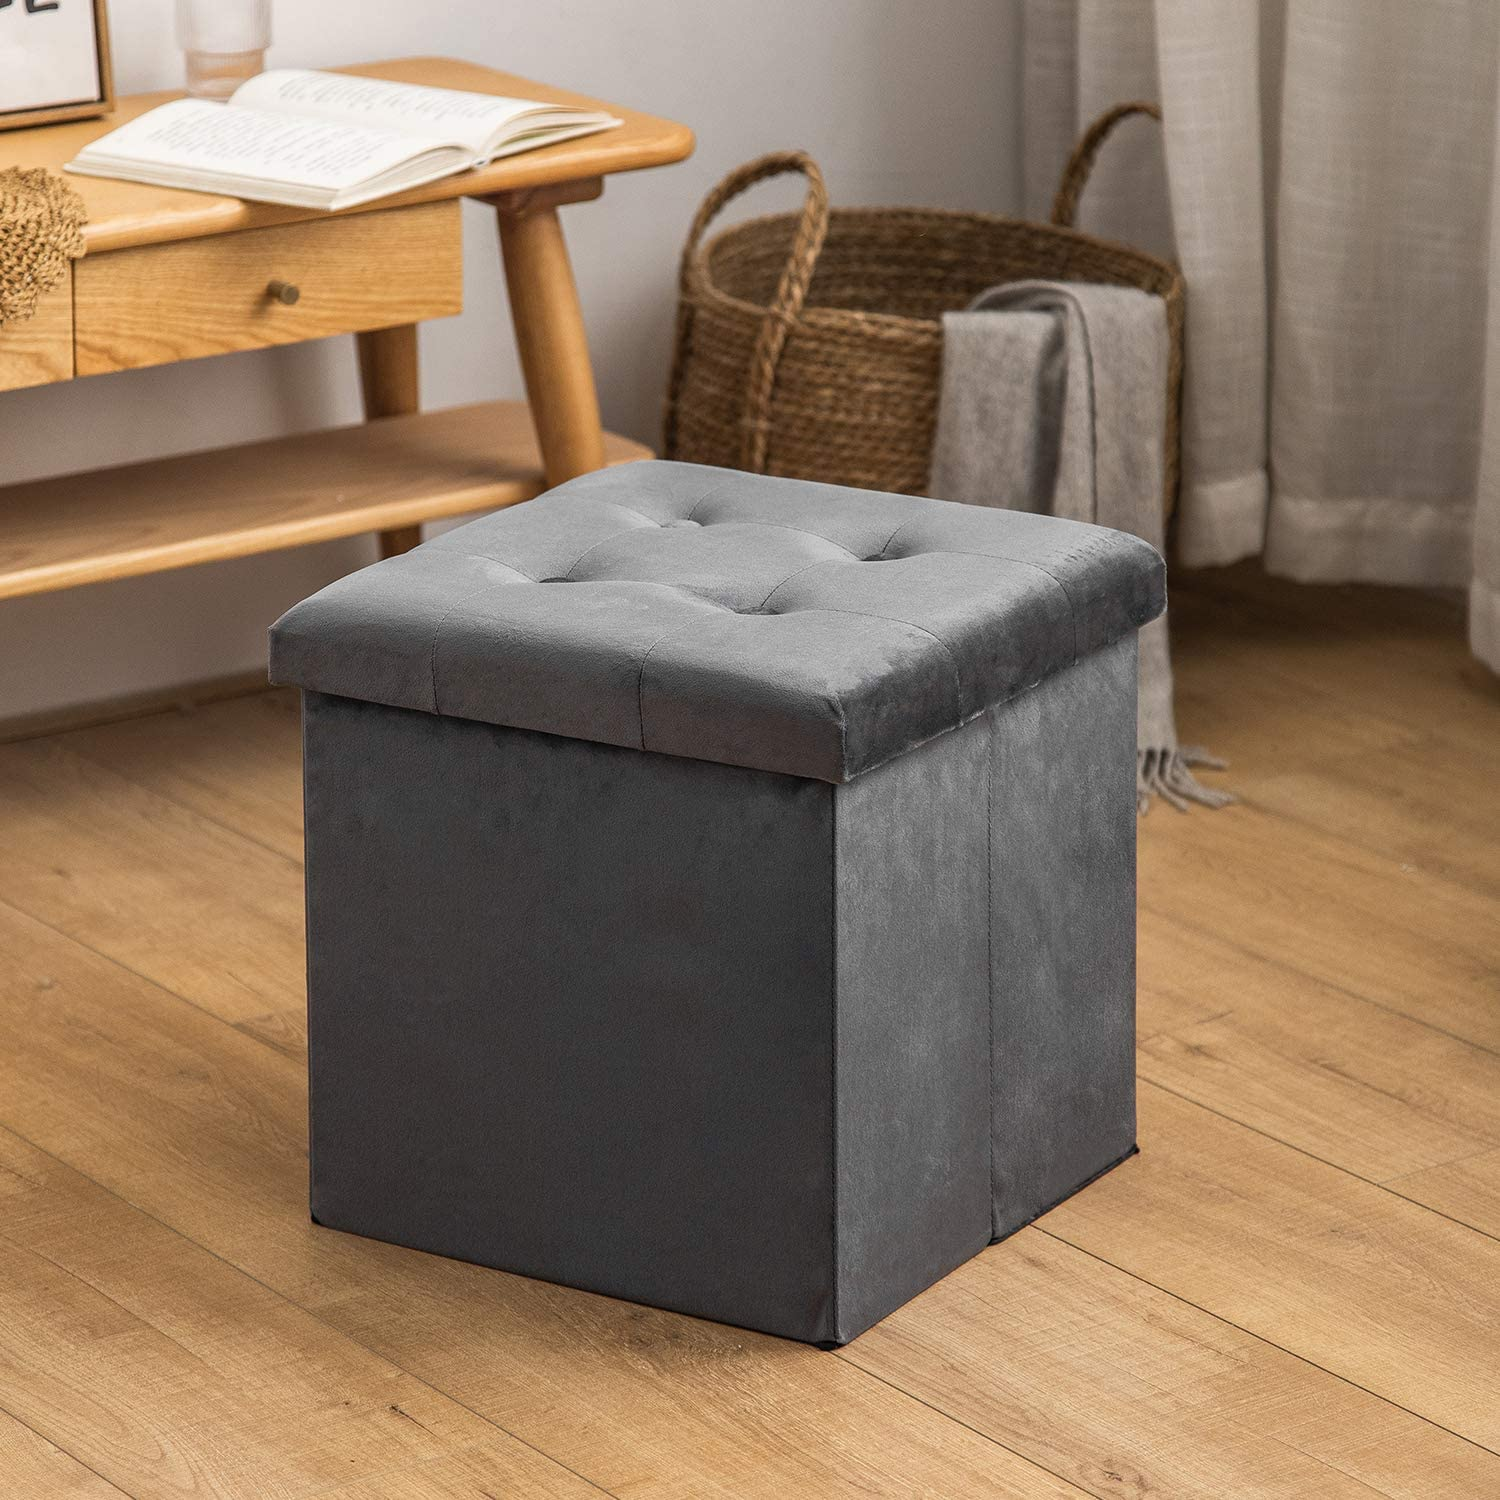 HuiDao Storage Ottoman Bench 15x15x15 Inch Super Thick Folding Storage Ottoman Cube Toy Chest Foot Rest Stool Storage Chair for Living Room Bedroom Office (Faux Suede - Grey)